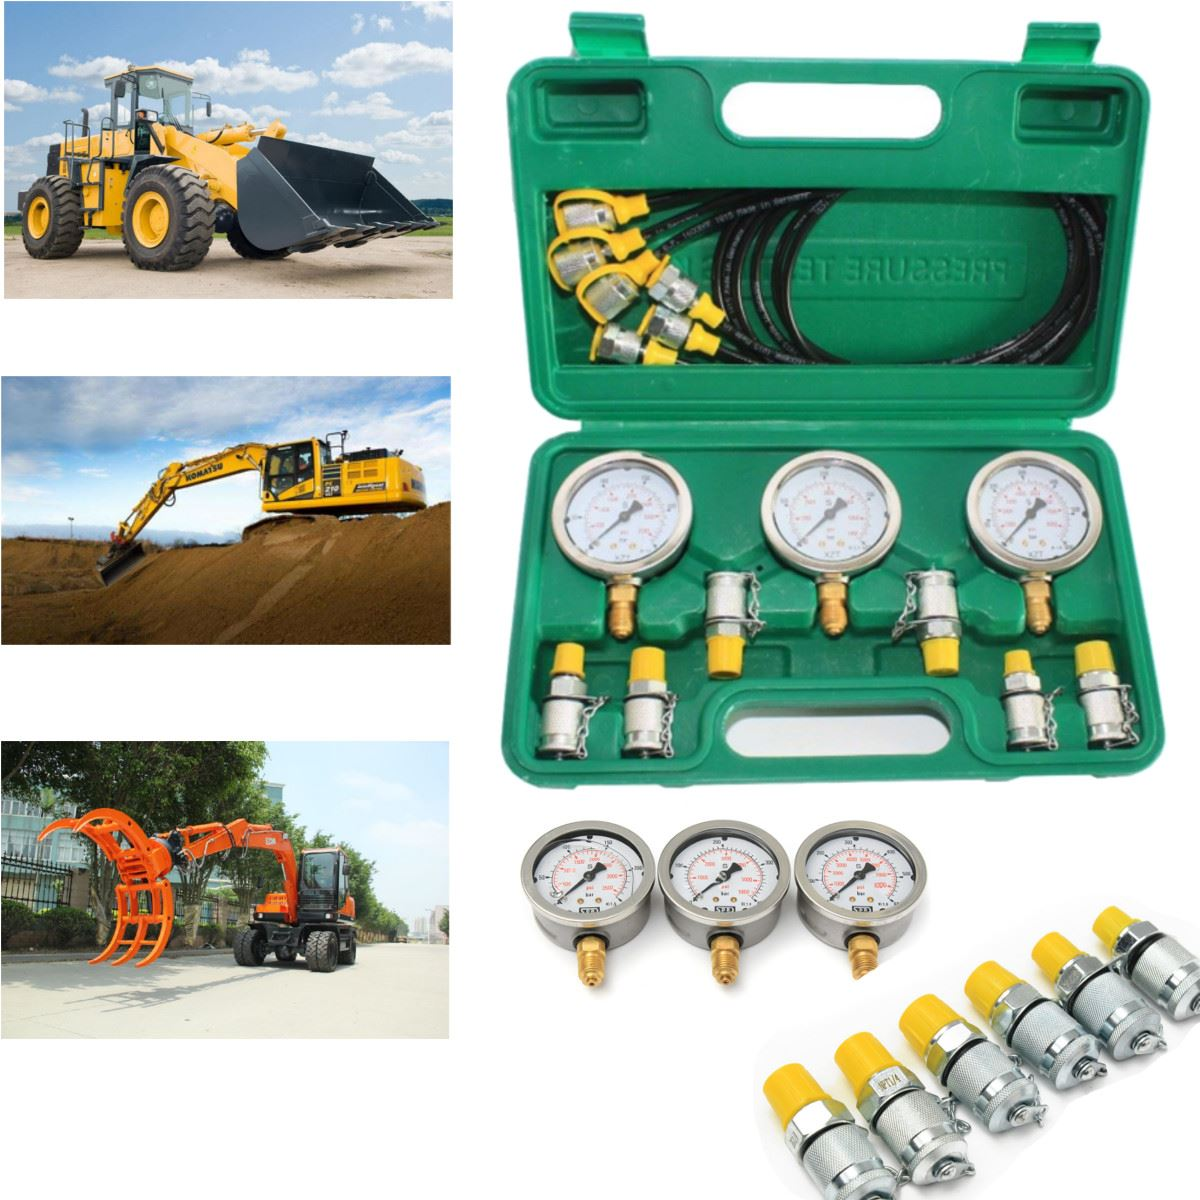 sp600 Excavator Hydraulic Pressure Test Kit Guage Tester Coupling for Excavator